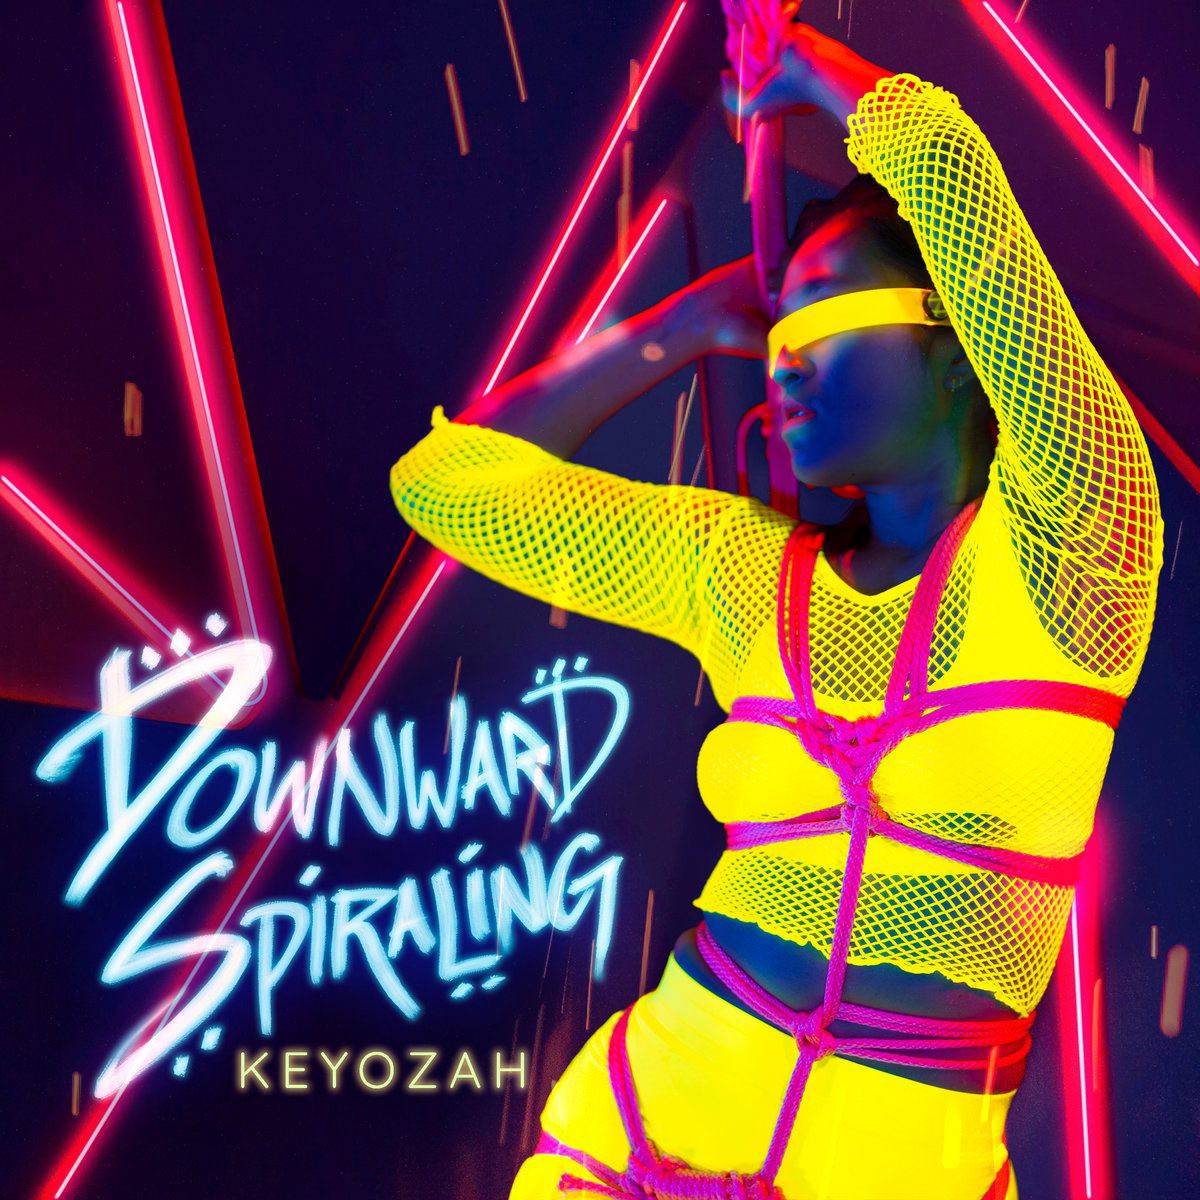 Bay area electropop act Keyozah returns with an all new video / single: 'Downward Spiraling'